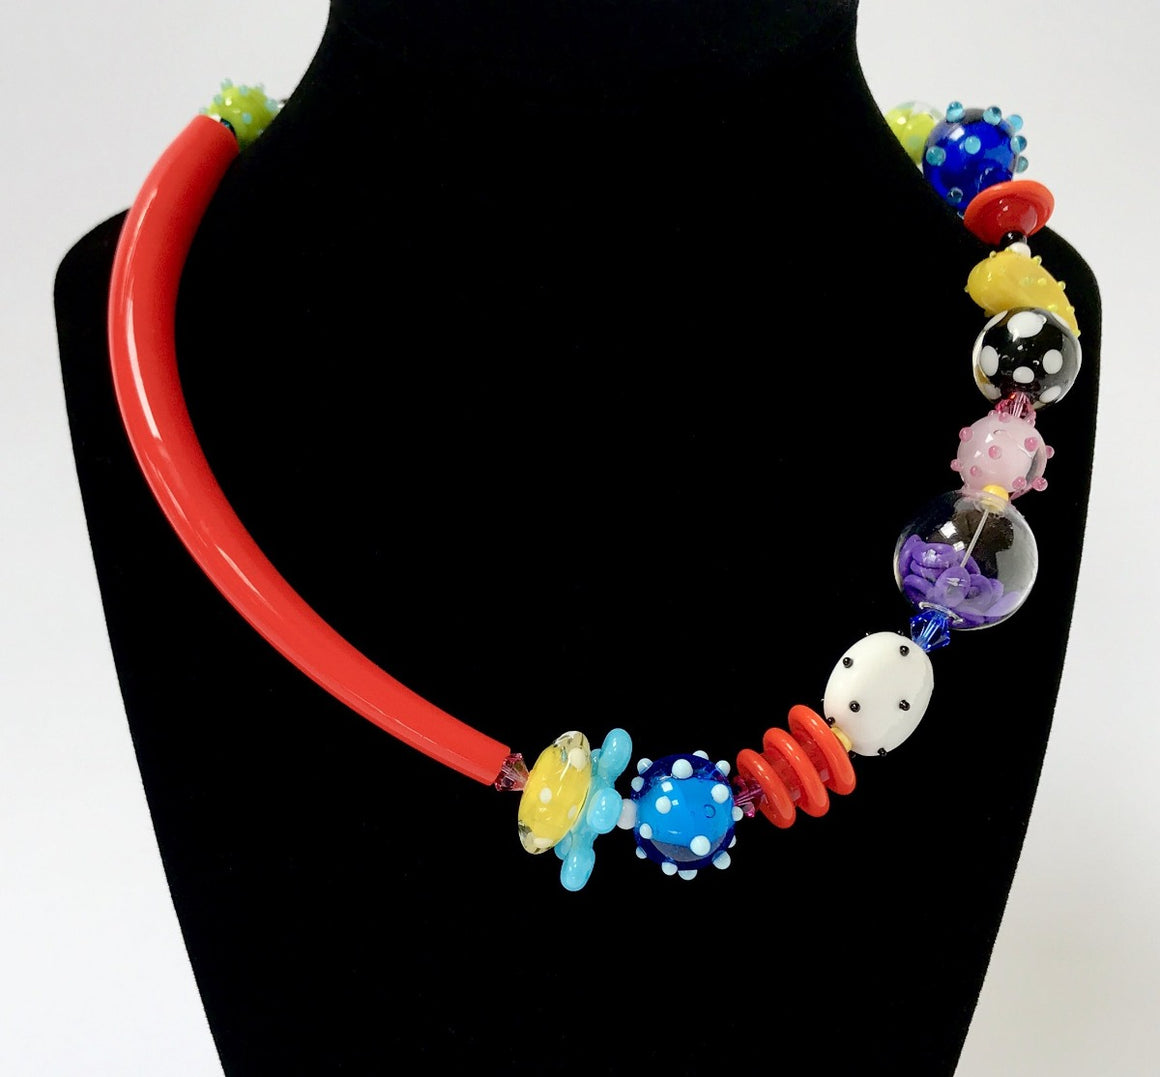 Multi Color Caress Necklace by Jasmine Keane